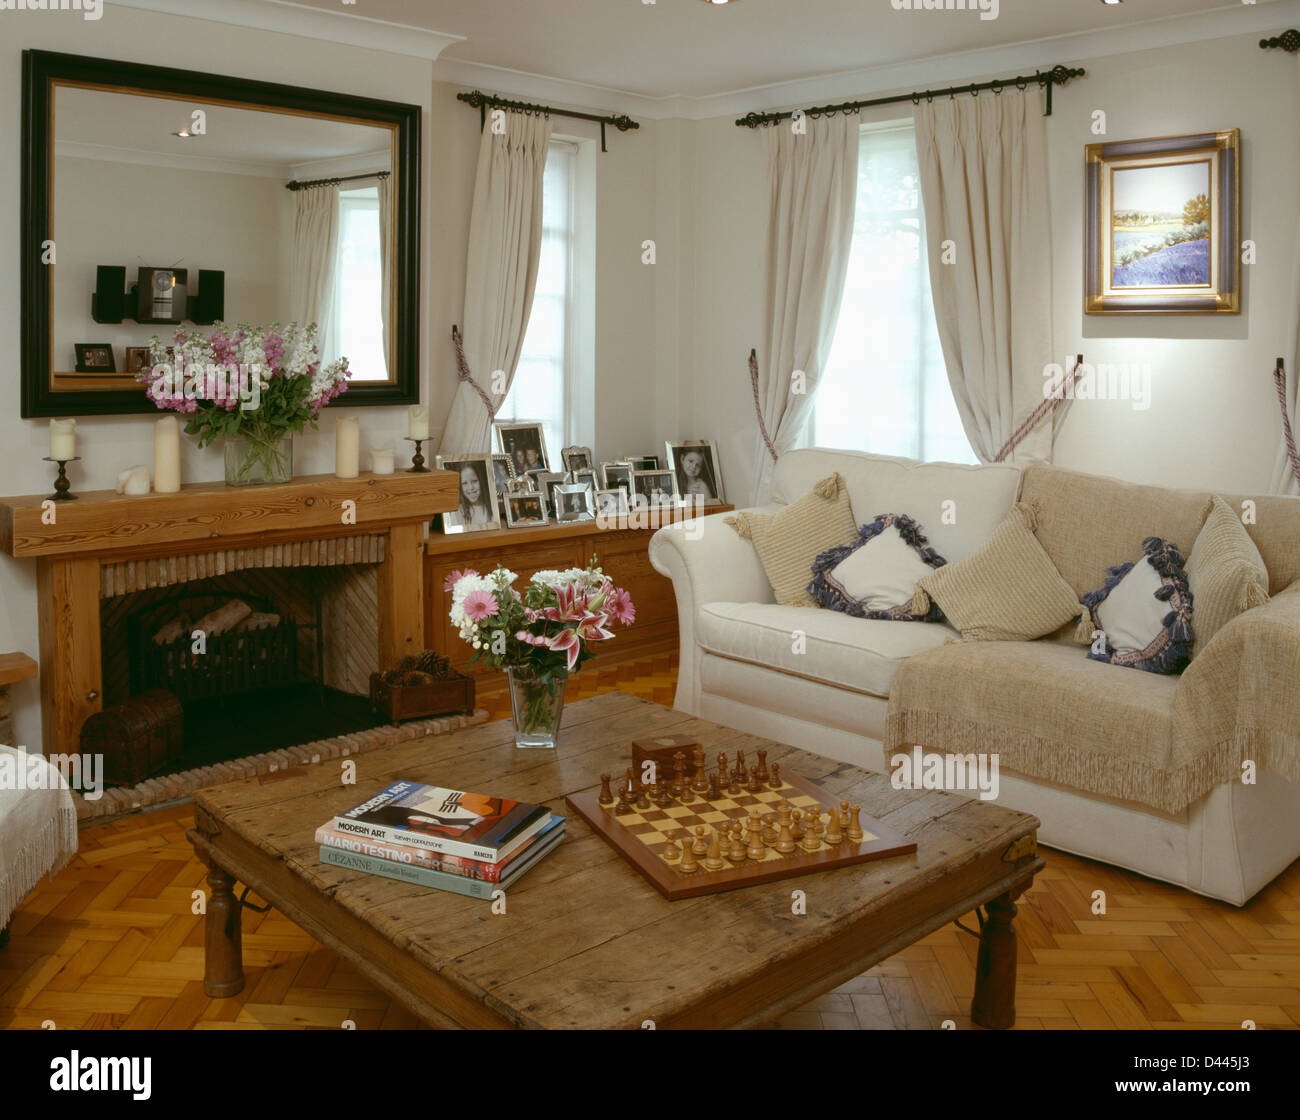 Indonesian Wood Coffee Table And Cream Sofa With Beige